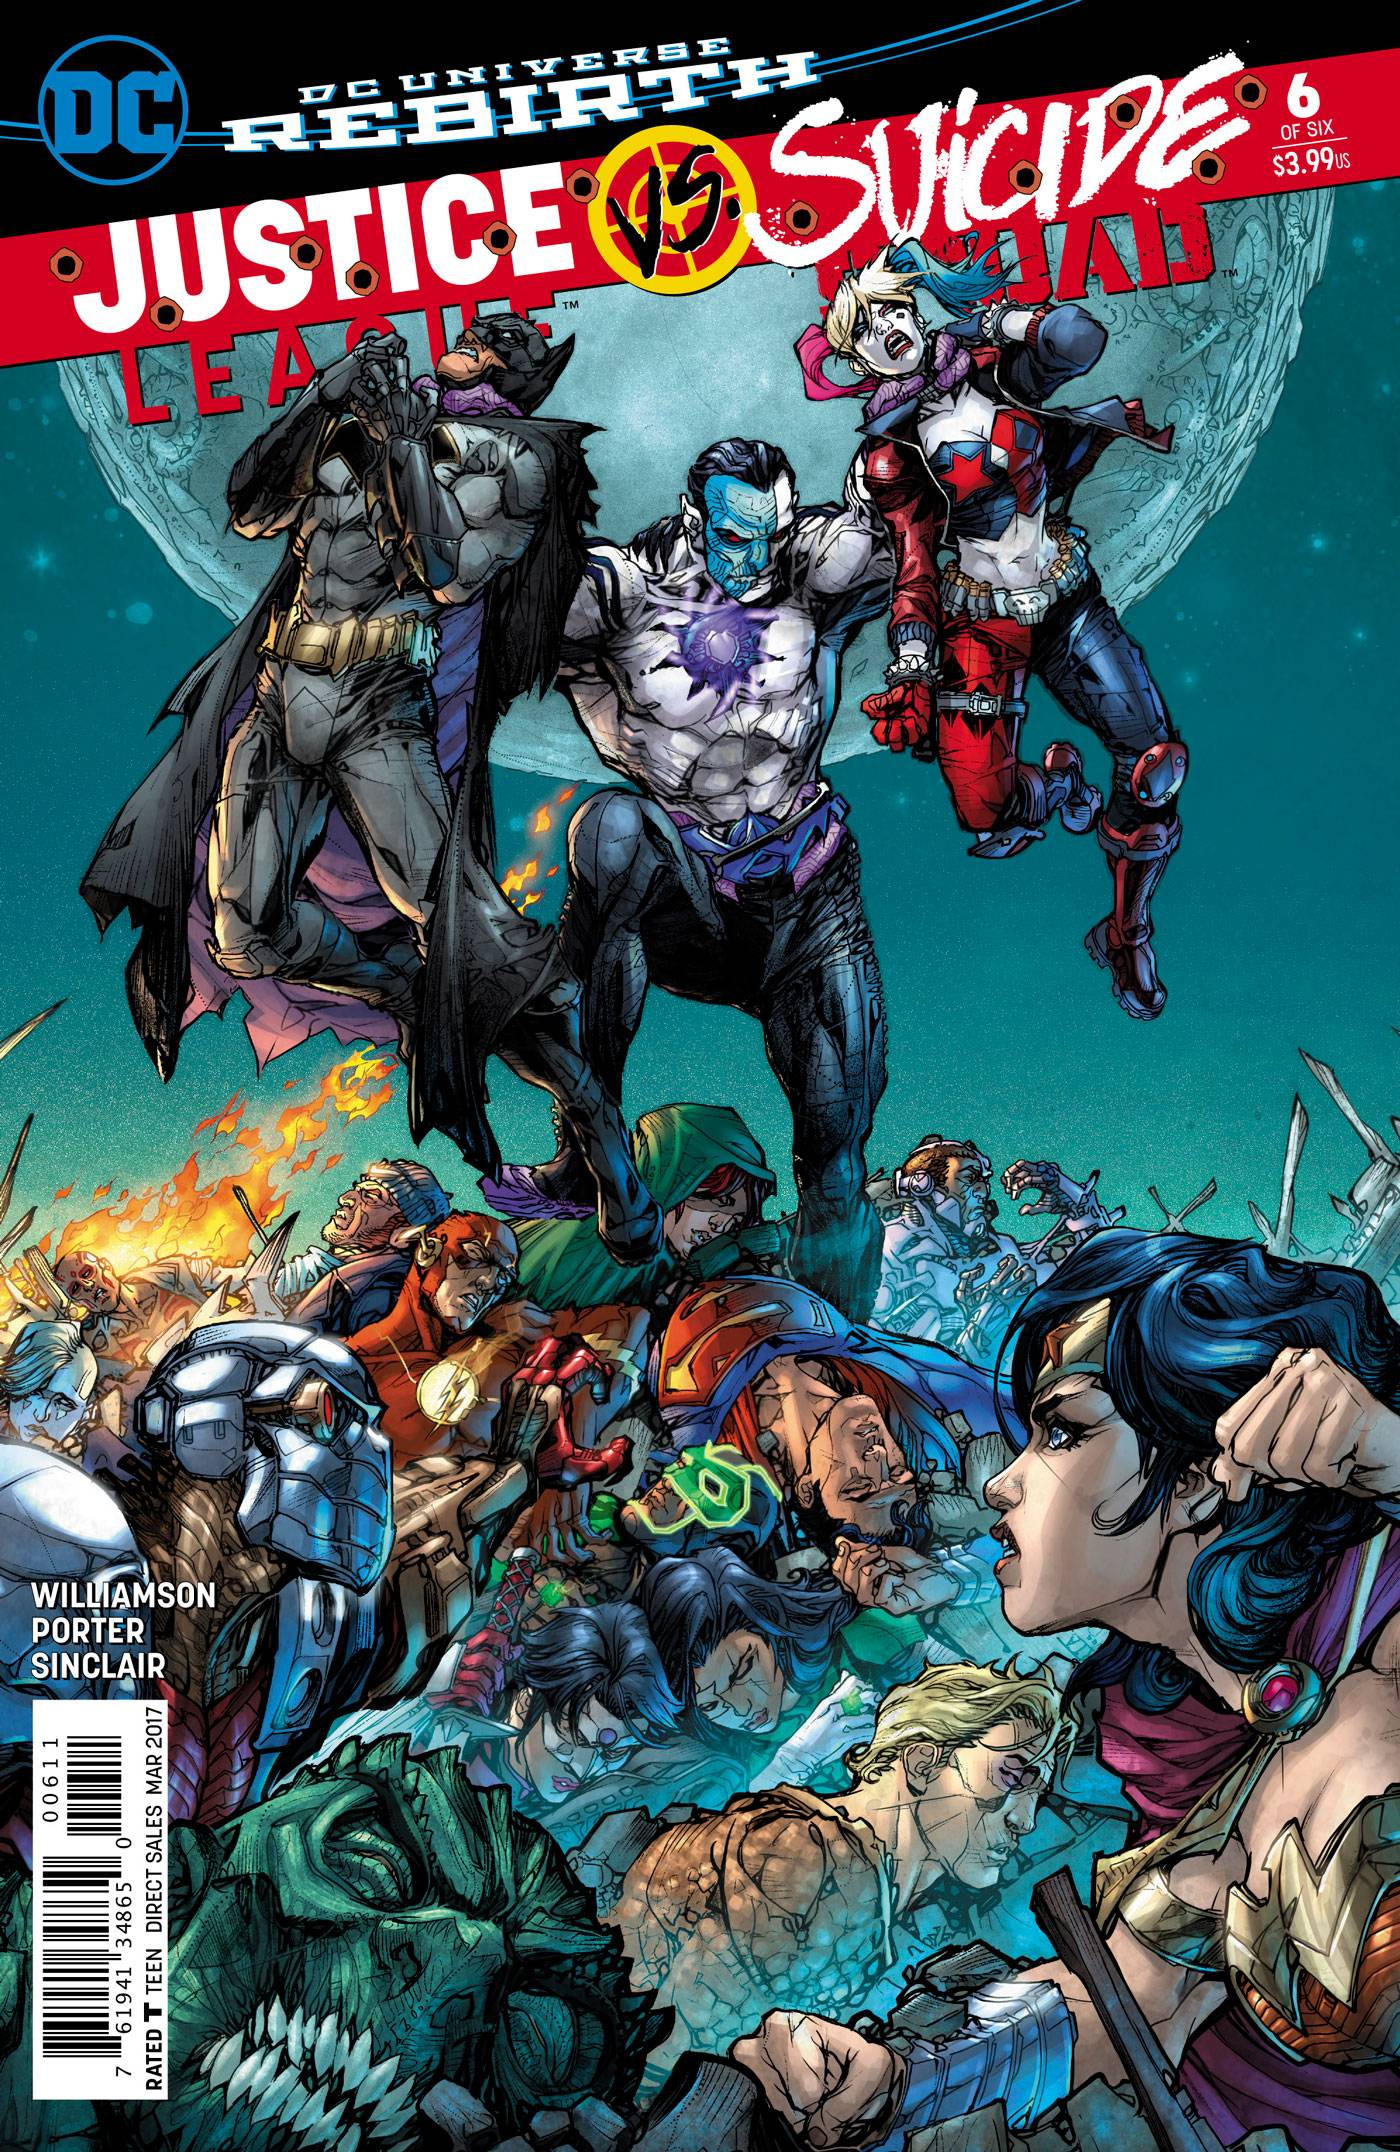 JUSTICE LEAGUE SUICIDE SQUAD #6